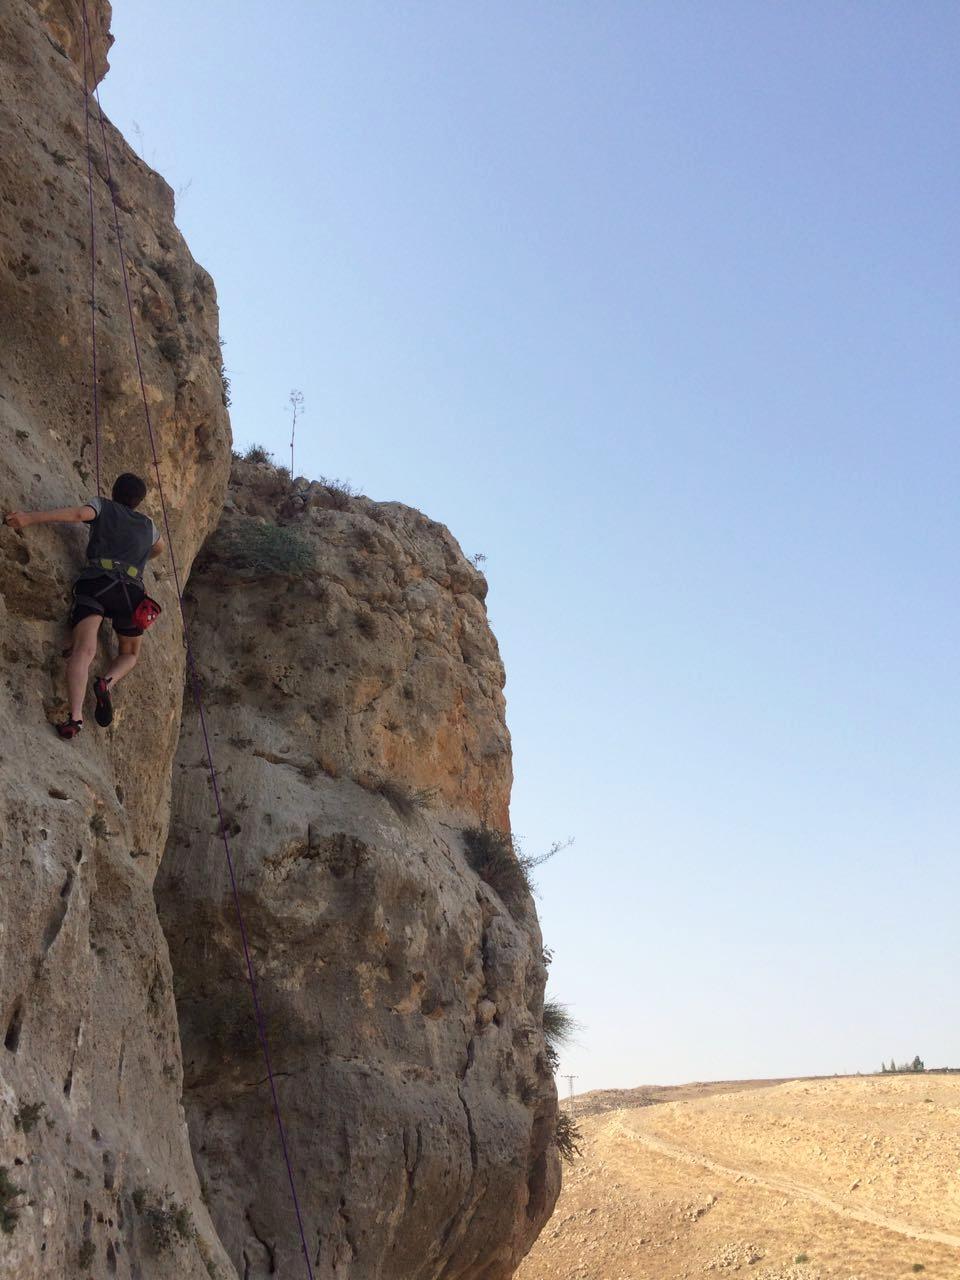 Me, climbing at Fuheis last week